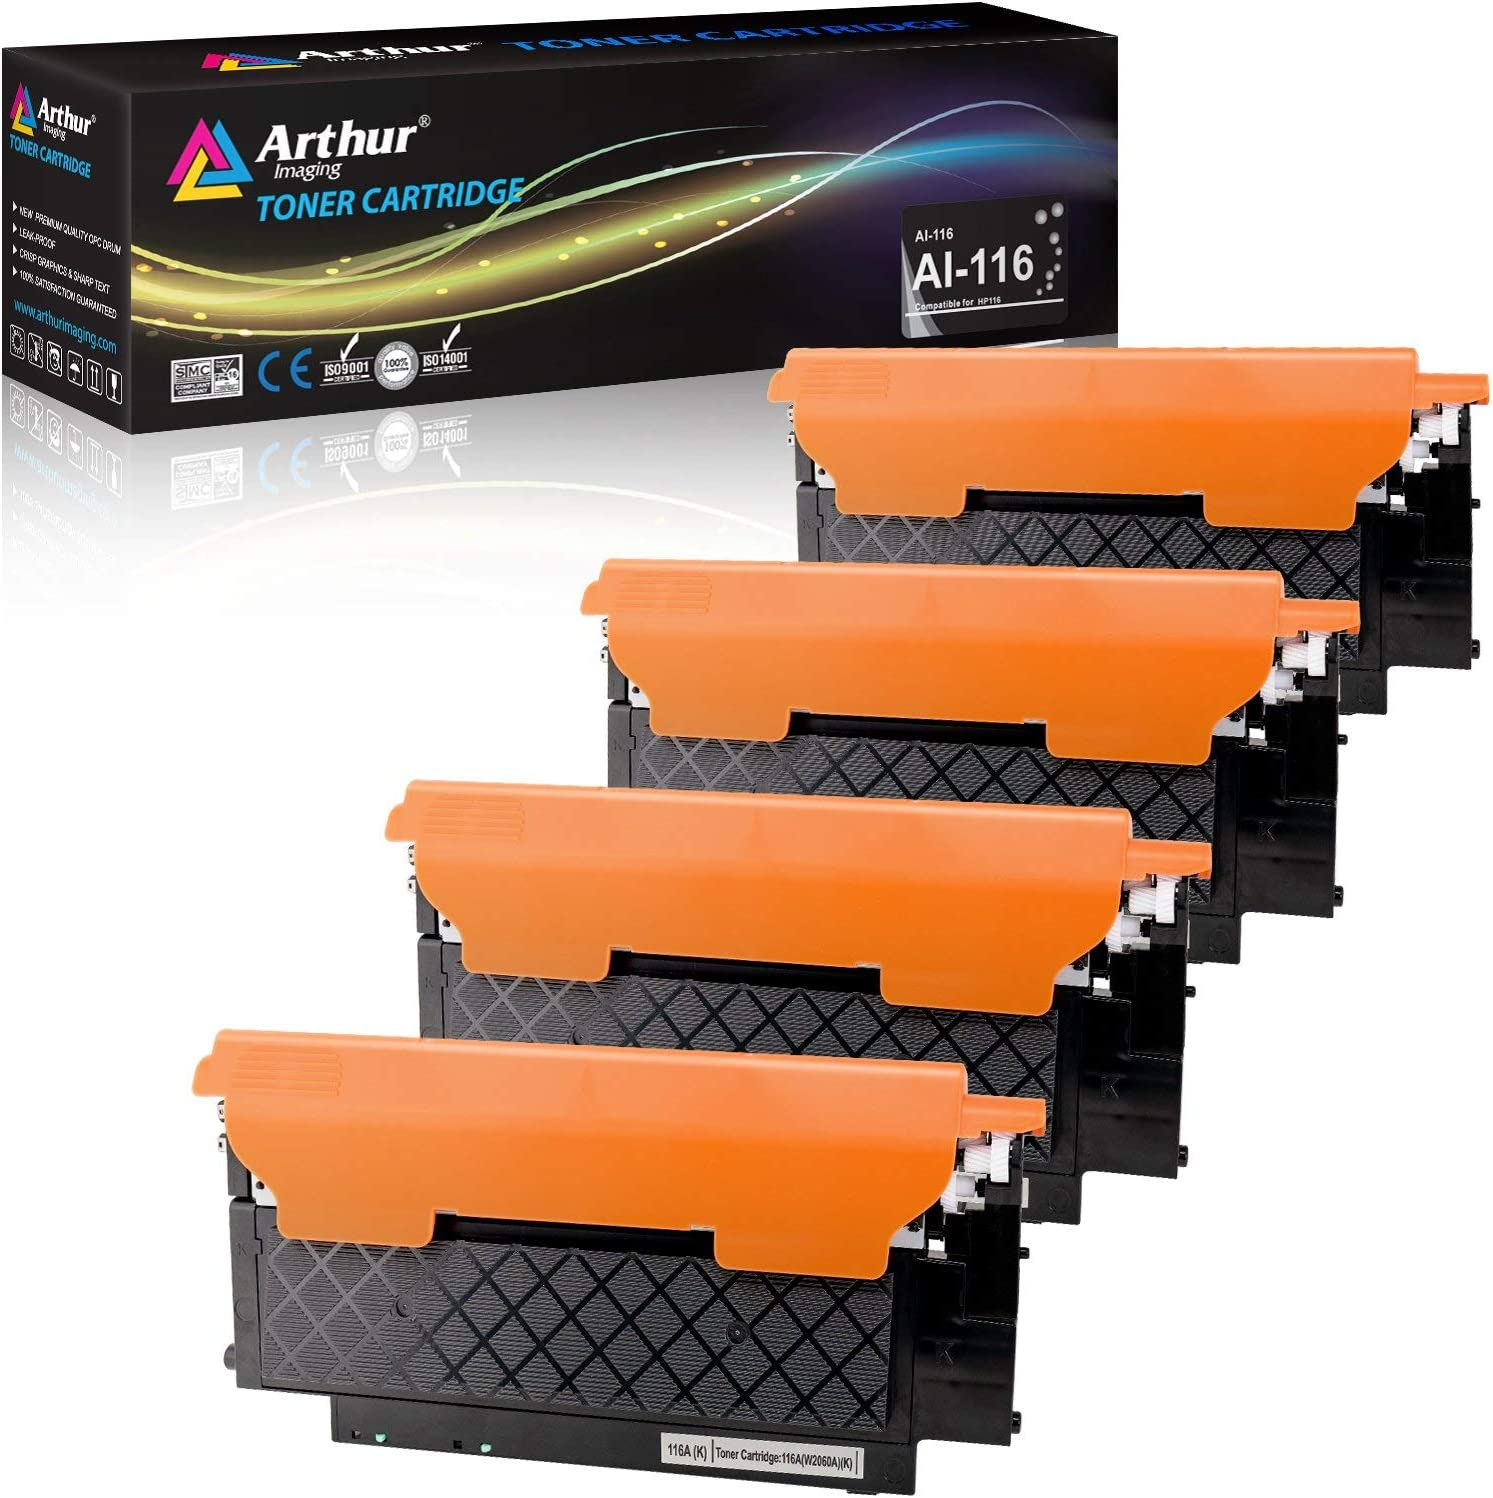 Arthur Imaging with CHIP Compatible Toner Cartridge Replacement for HP 116A W2060A, W2061A, W2062A,W2063A Use with HP 150A 150nw MFP178nw 179fnw Laser Printers (Black, Cyan, Yellow, Magenta, 4-Pack)